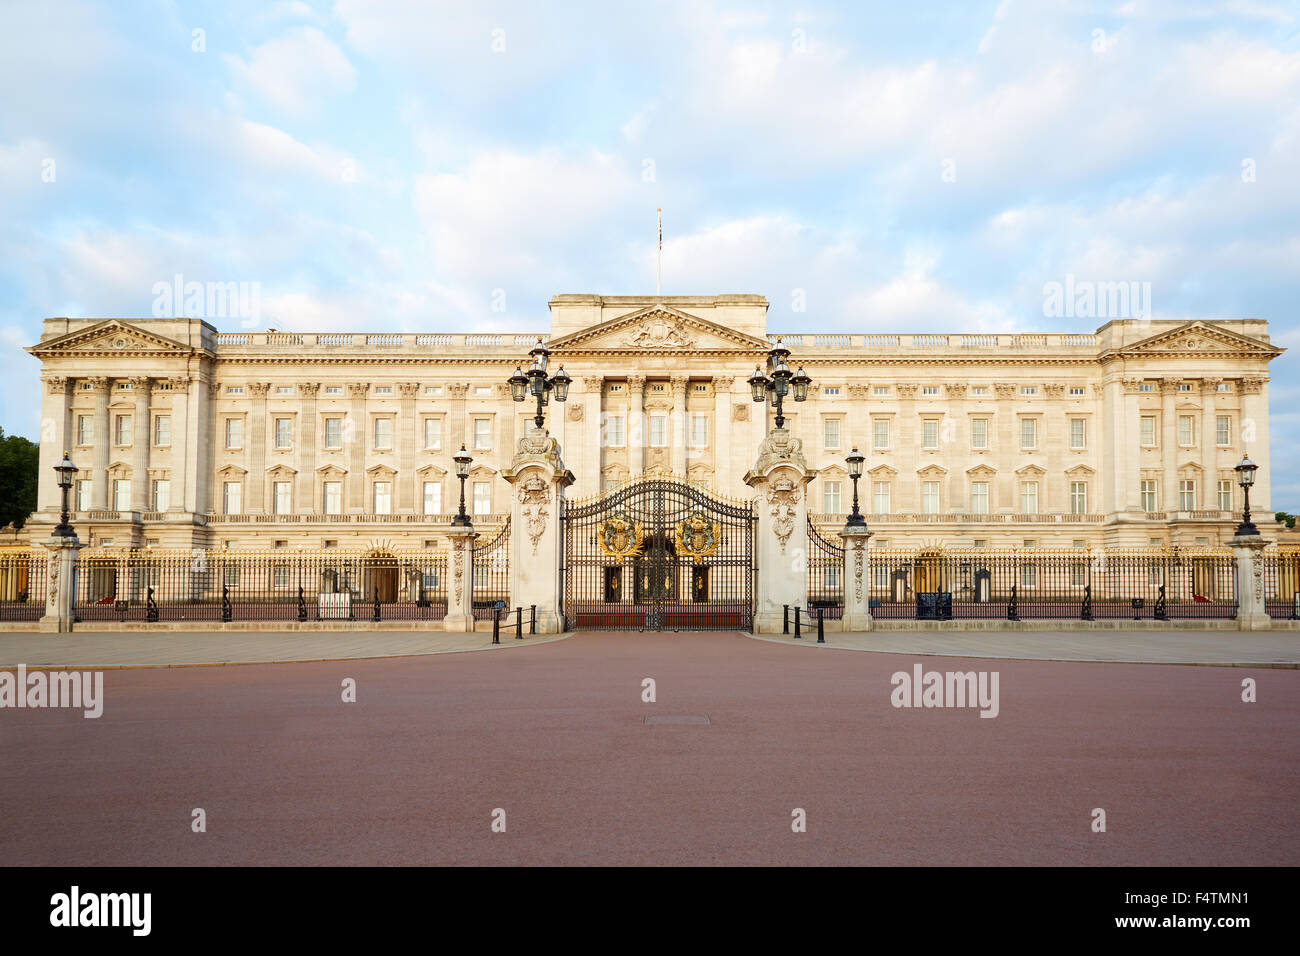 Buckingham palace in the early morning light in London - Stock Image